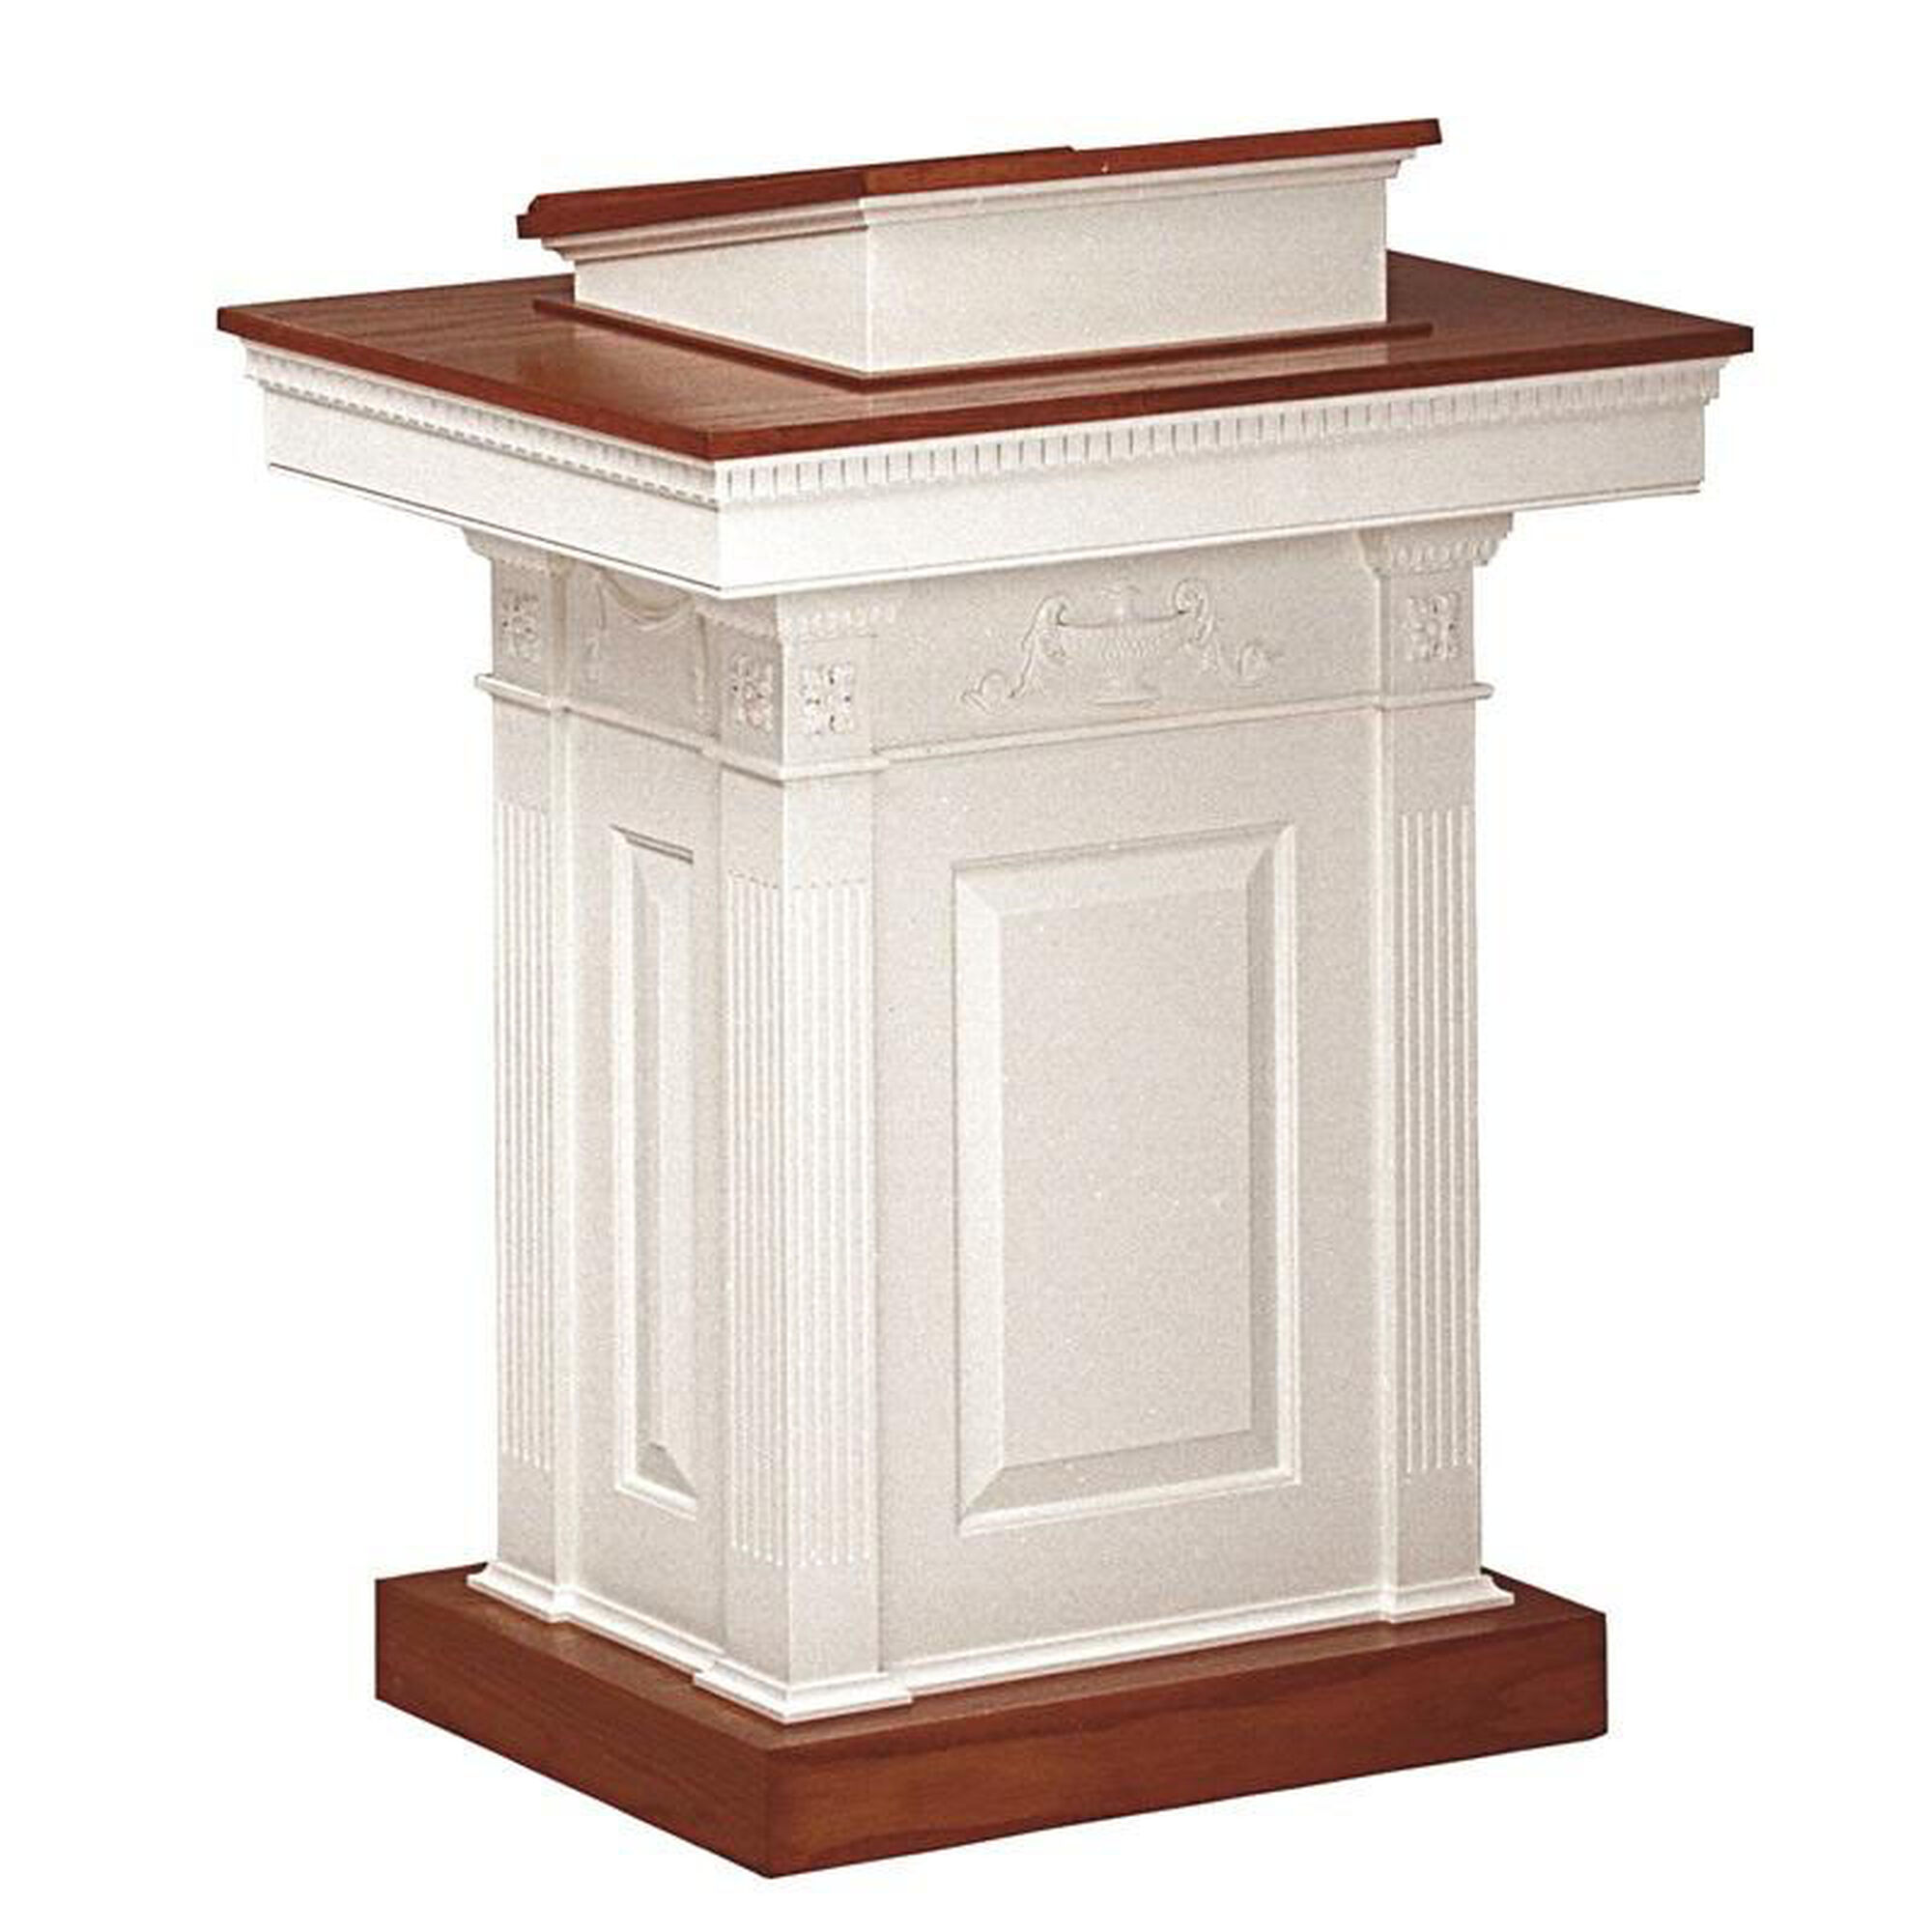 red oak pedestal pulpit 8201ppcolonial churchchairs4less com